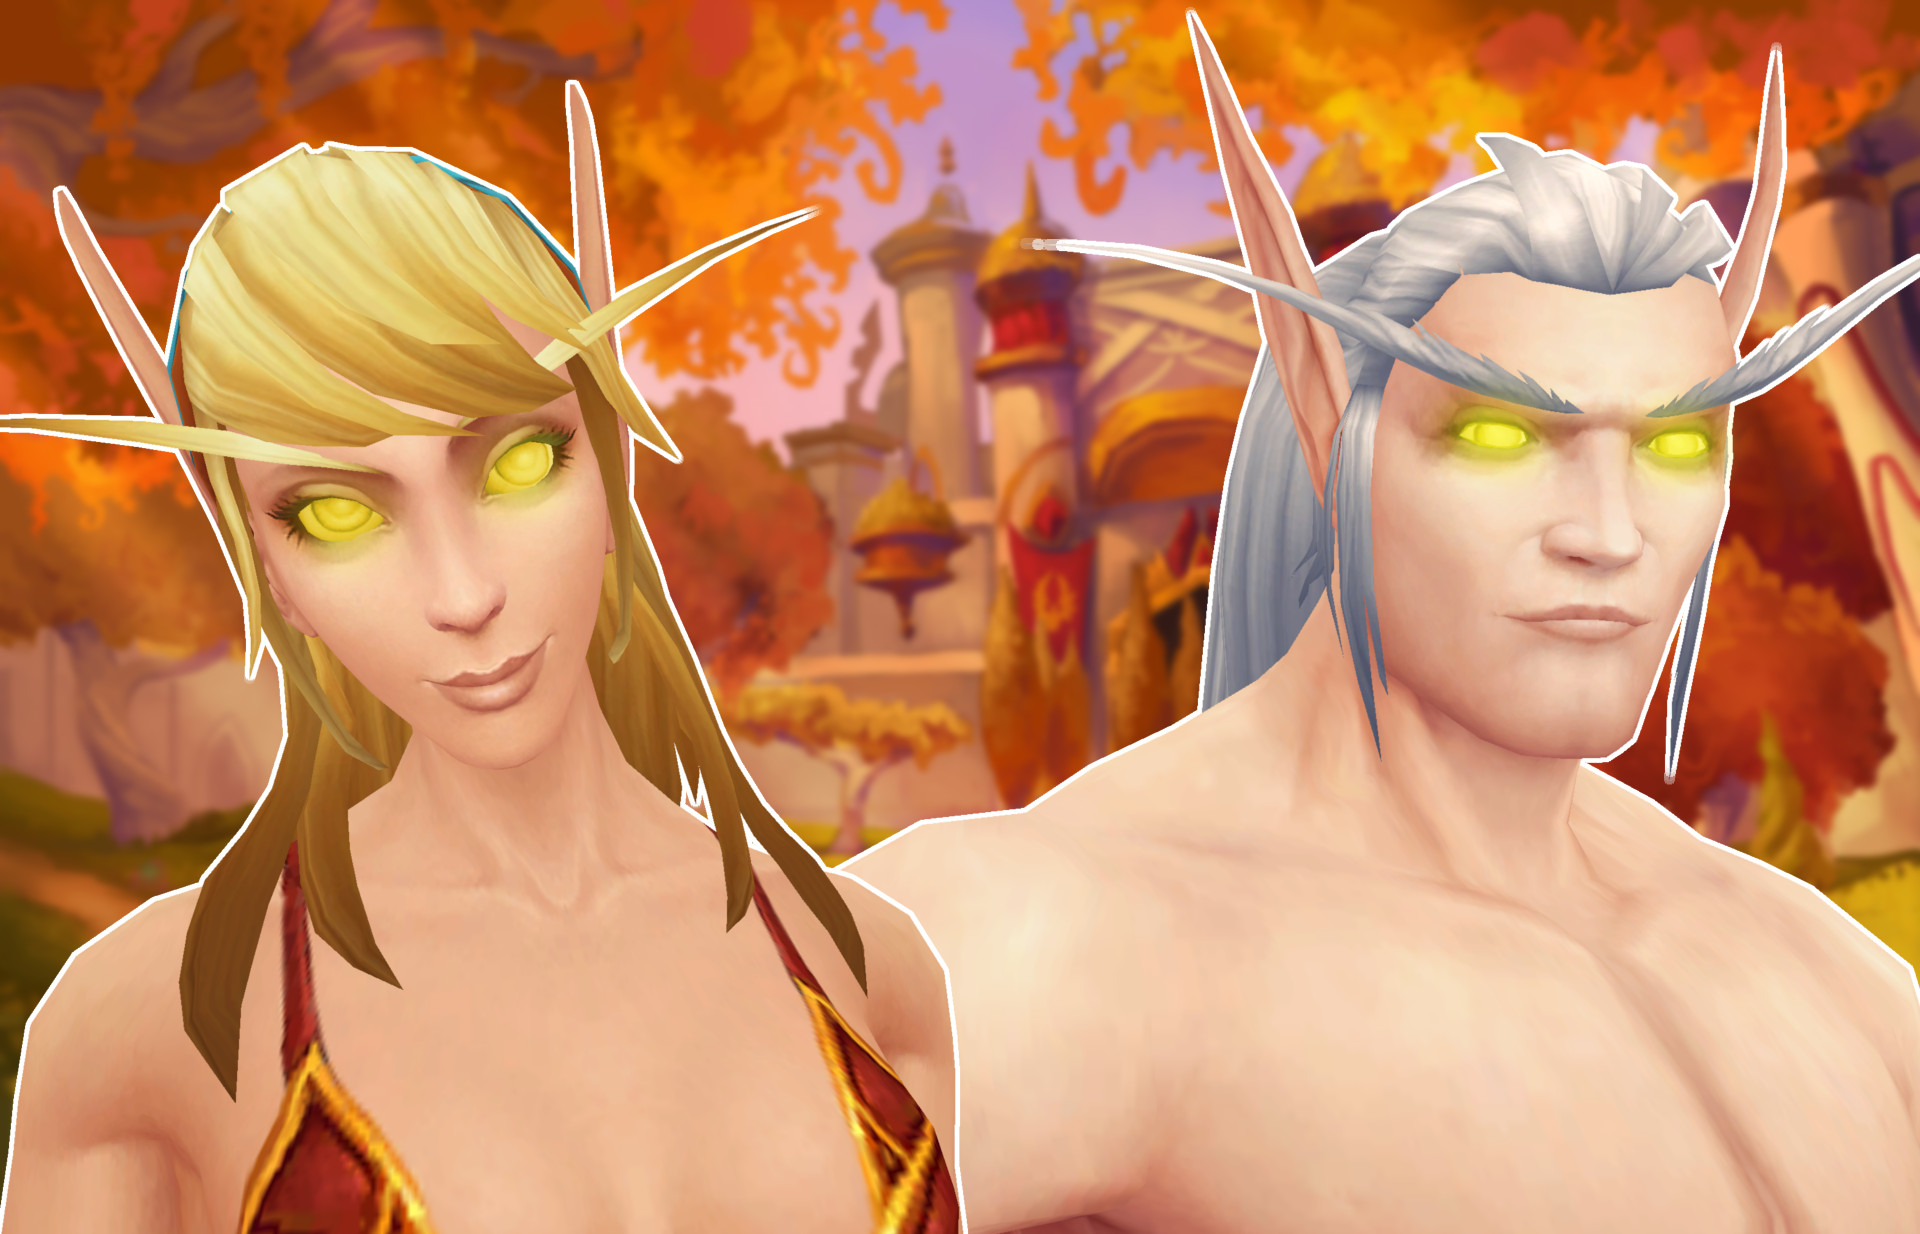 WoW Blood Elves Golden Eyes